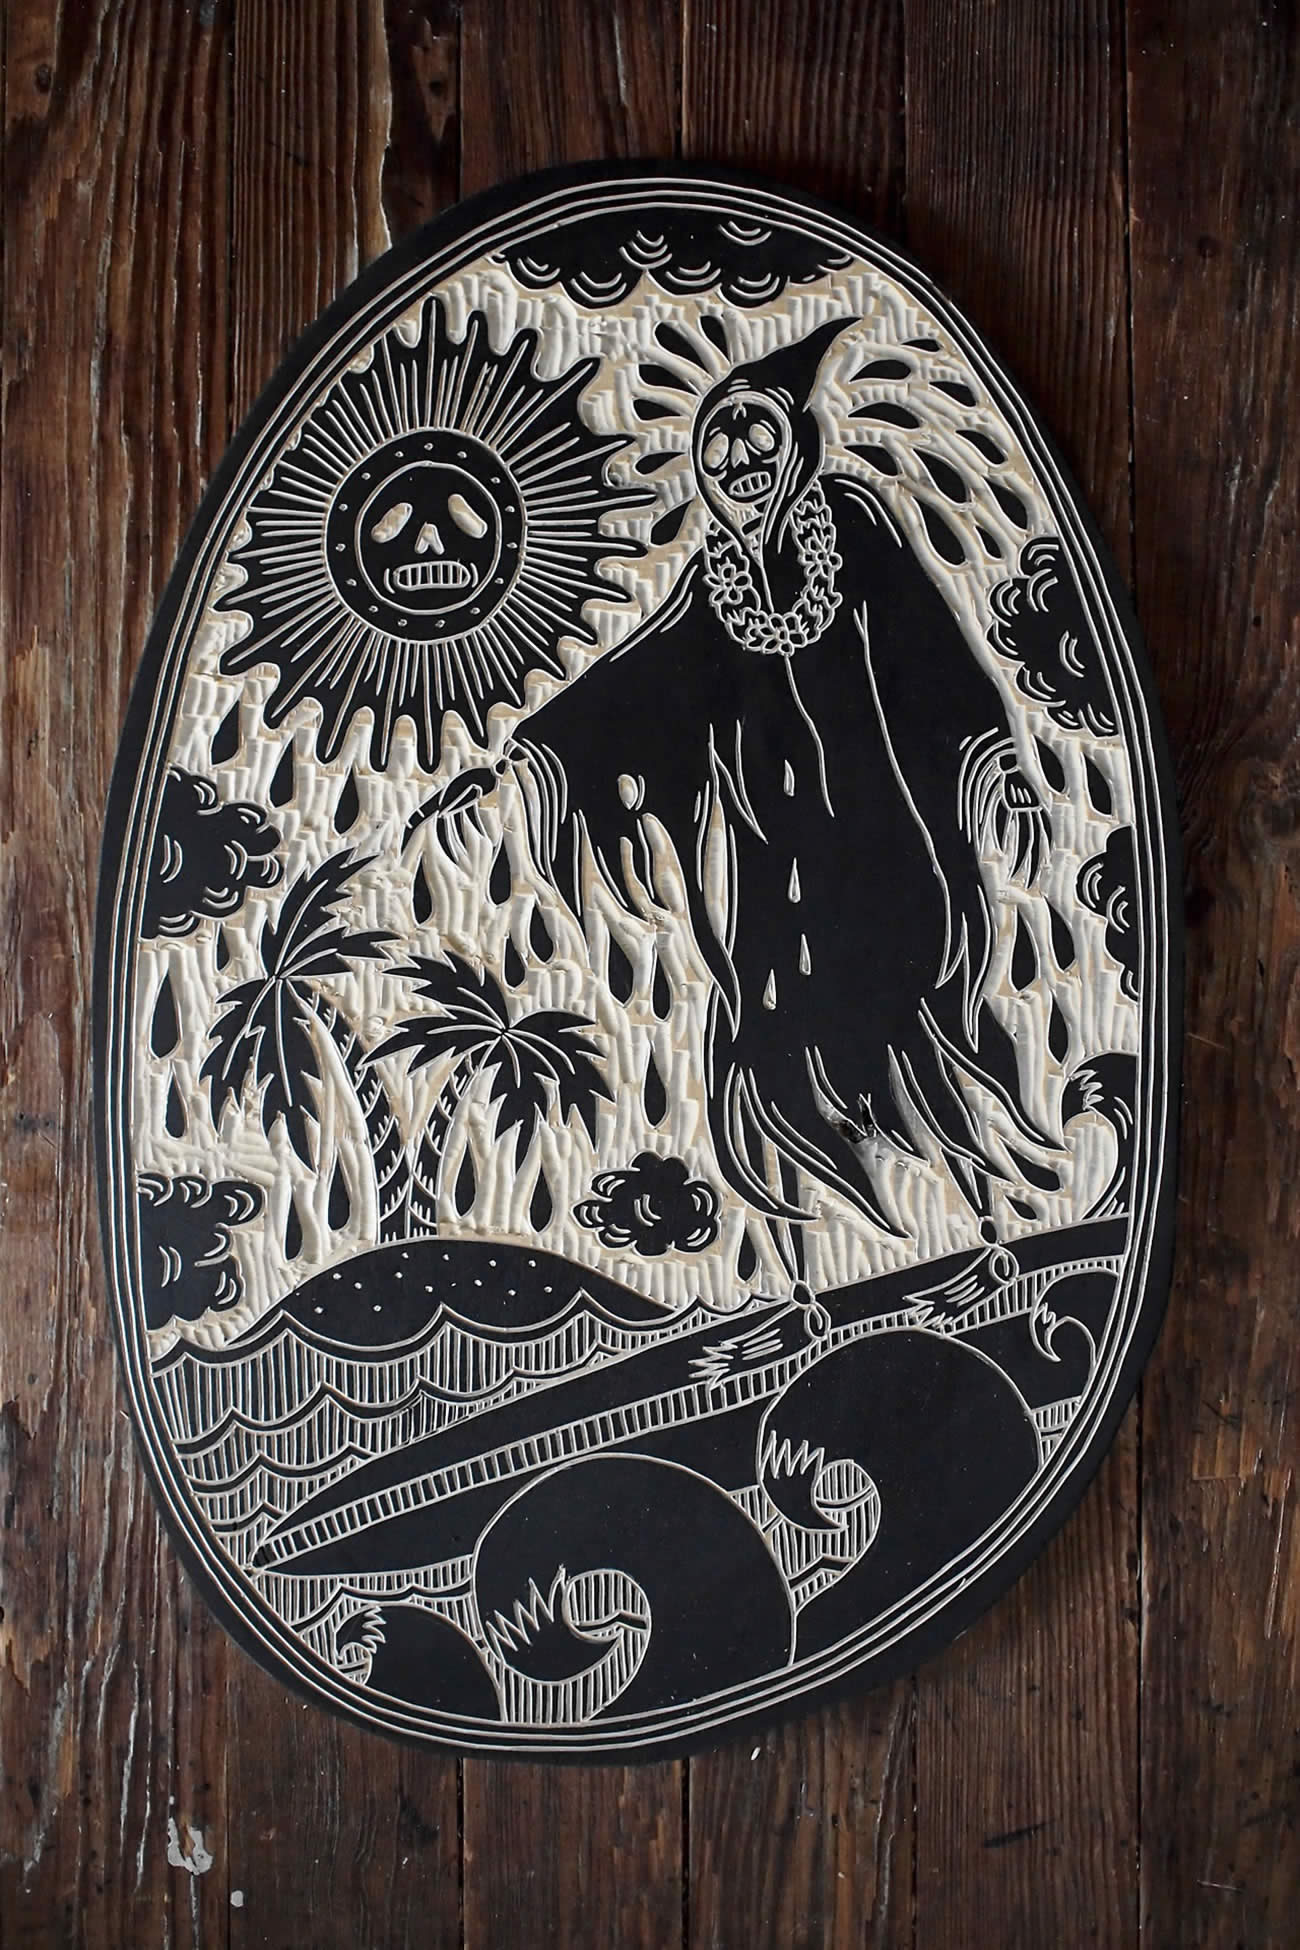 Tattoo-Inspired Woodcuts by Bryn Perrott